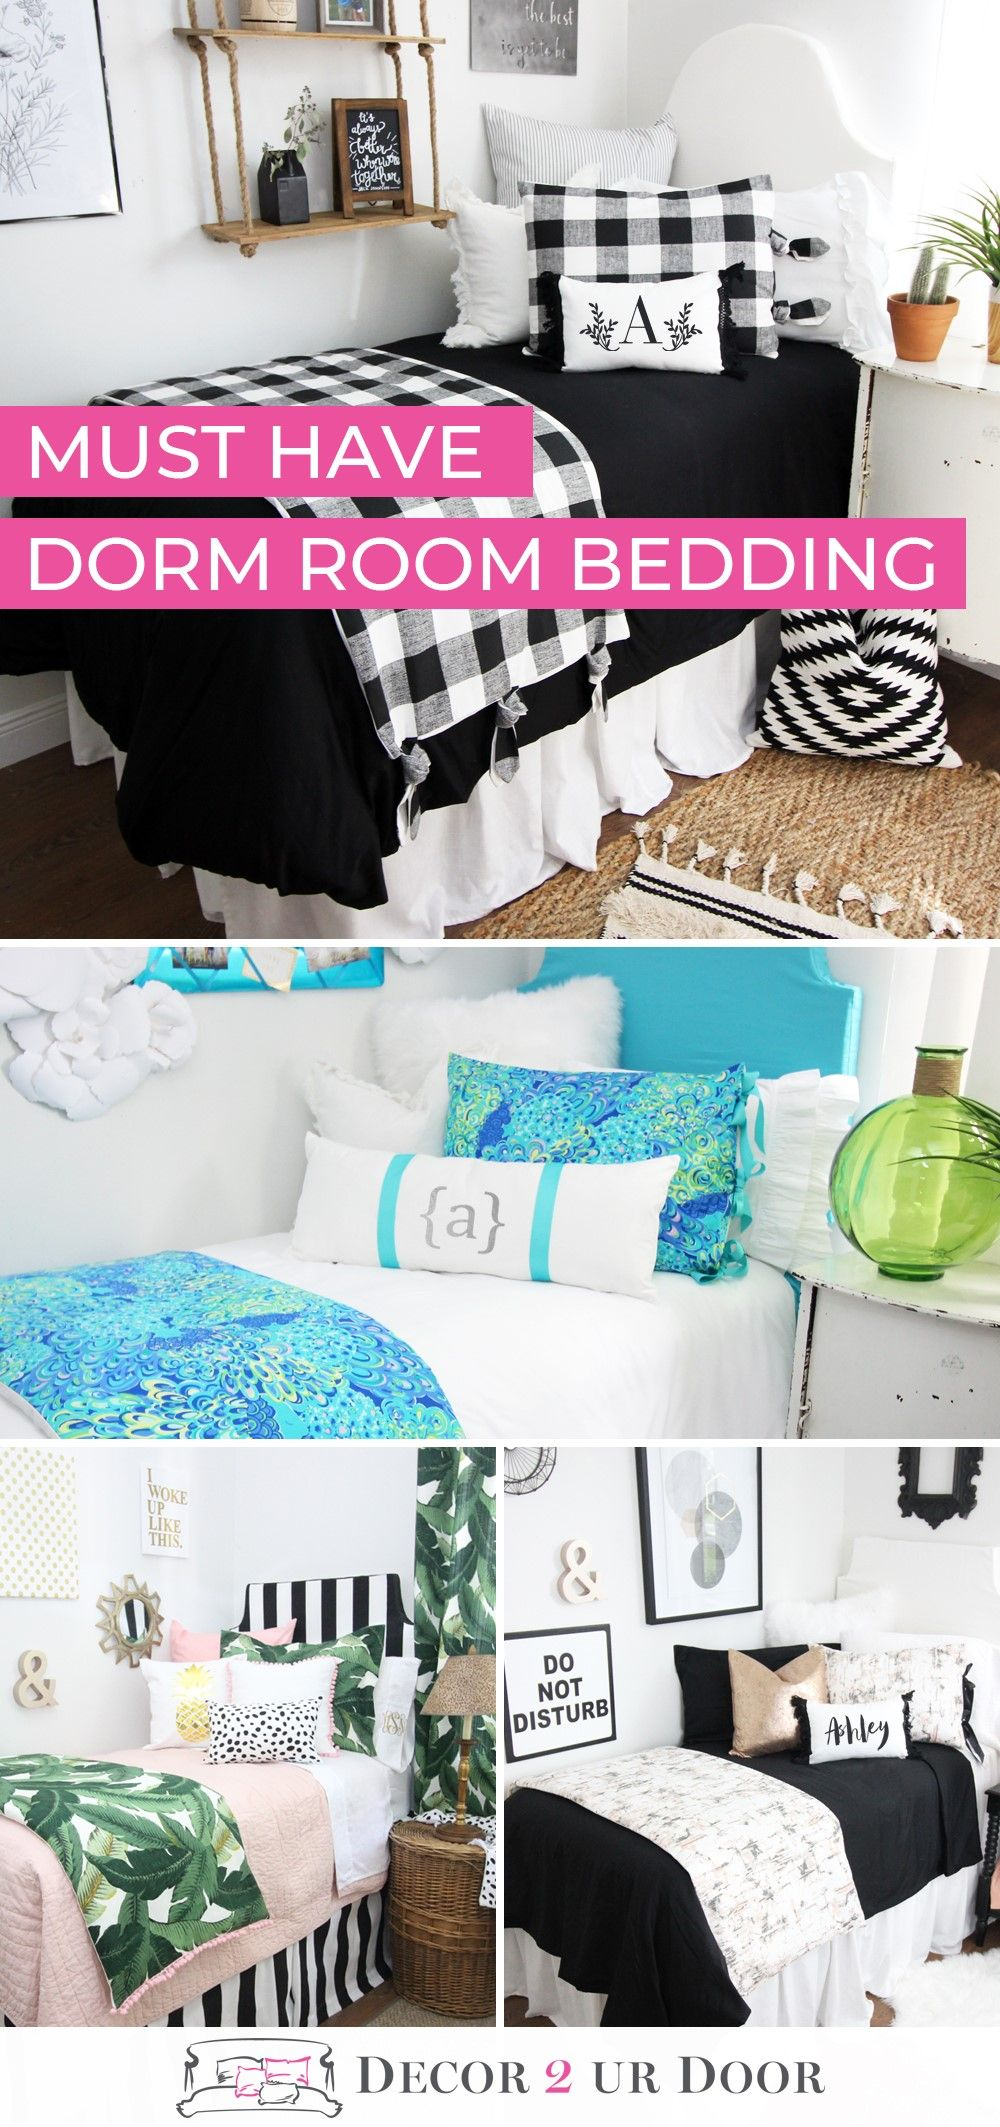 elephant bedding watercolor tree home covers duvet quantities comforters duvets sun impressions collection tusk dorm bedspreads tiger limited cool lilly bedroom full lets which size room comforter pulitzer cute queen cha or xl in design ideas zoom cover rose of preppy twin prints